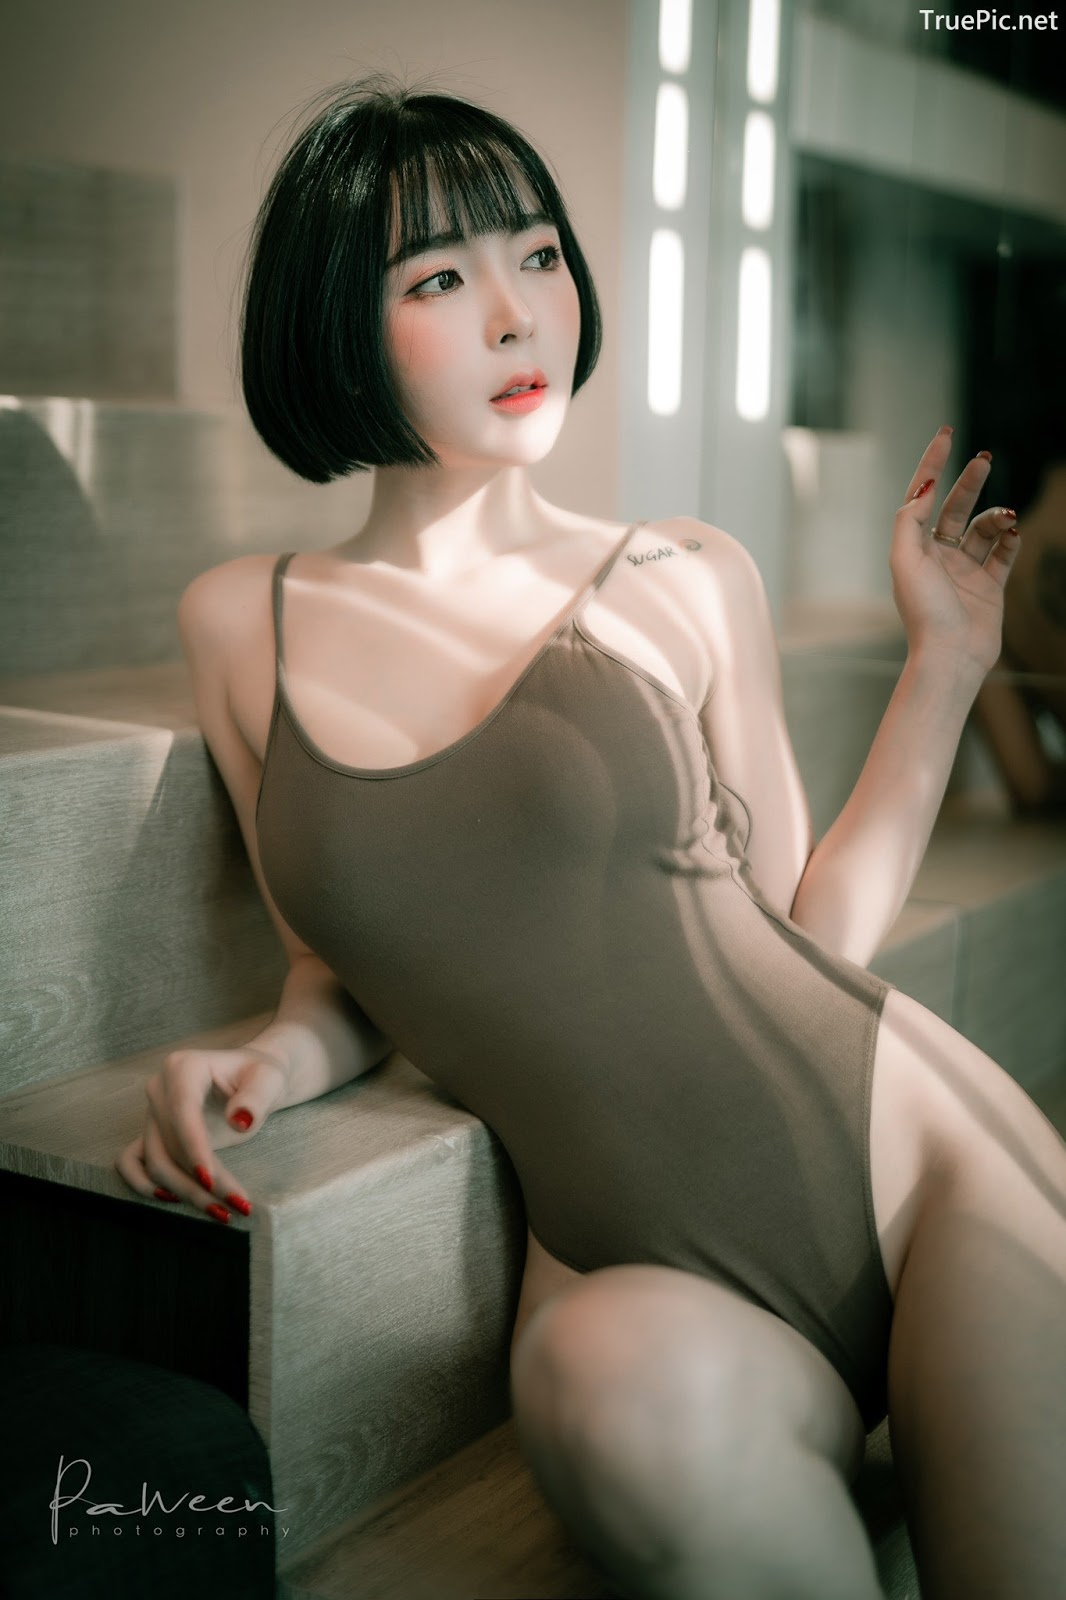 Image Thailand Model - Preeyapon Yangsanpoo - One Piece Swimsuit In House - TruePic.net - Picture-7